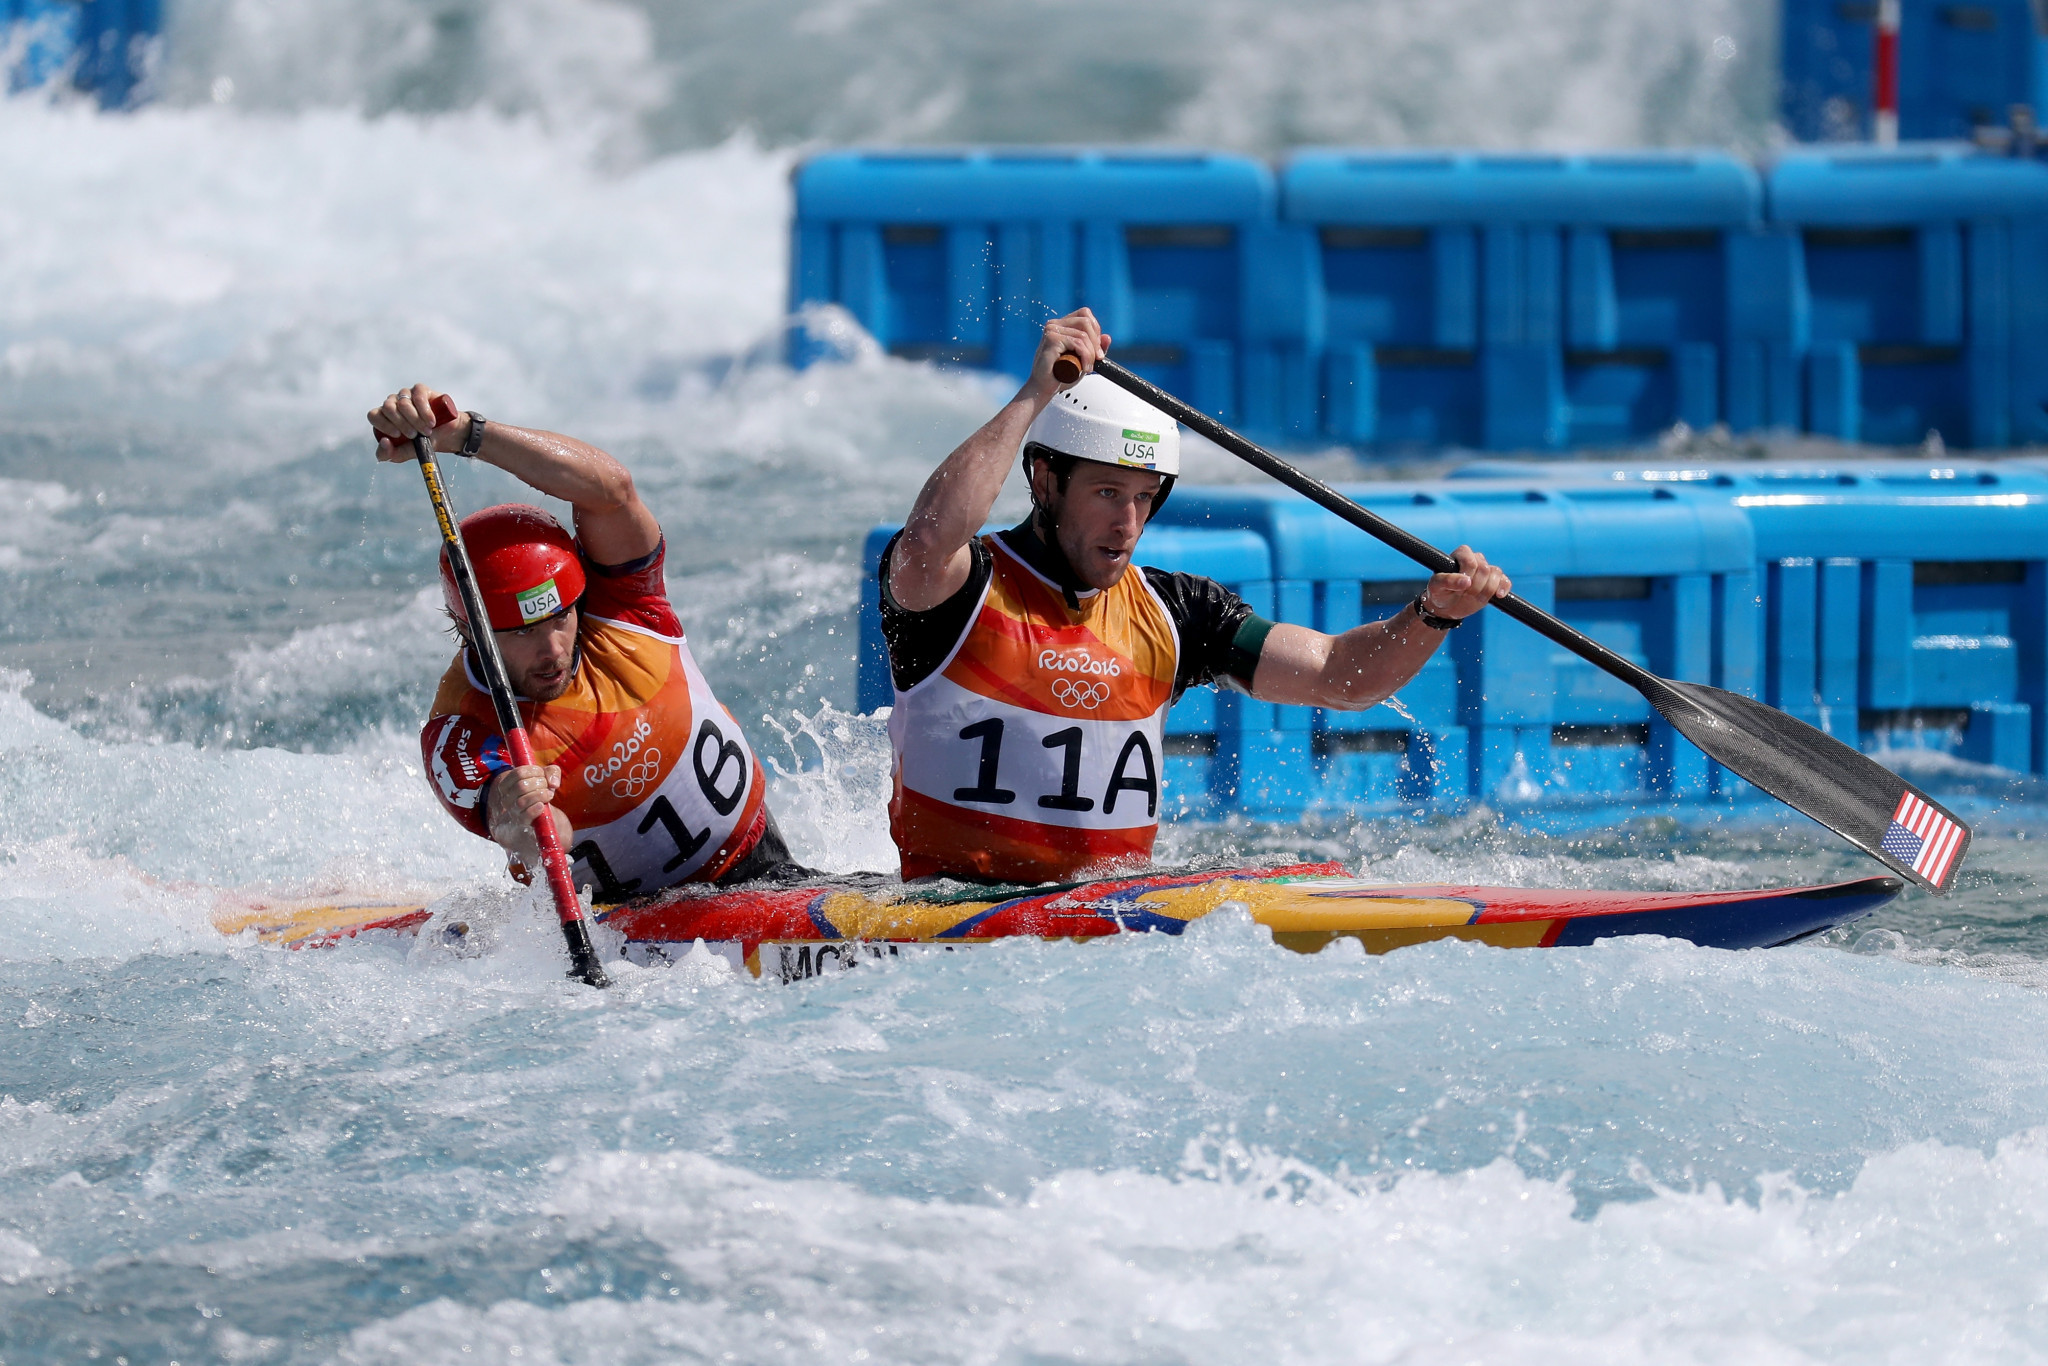 The Rio 2016 canoe slalom venue now offers free swimming in the afternoons for local people ©Getty Images